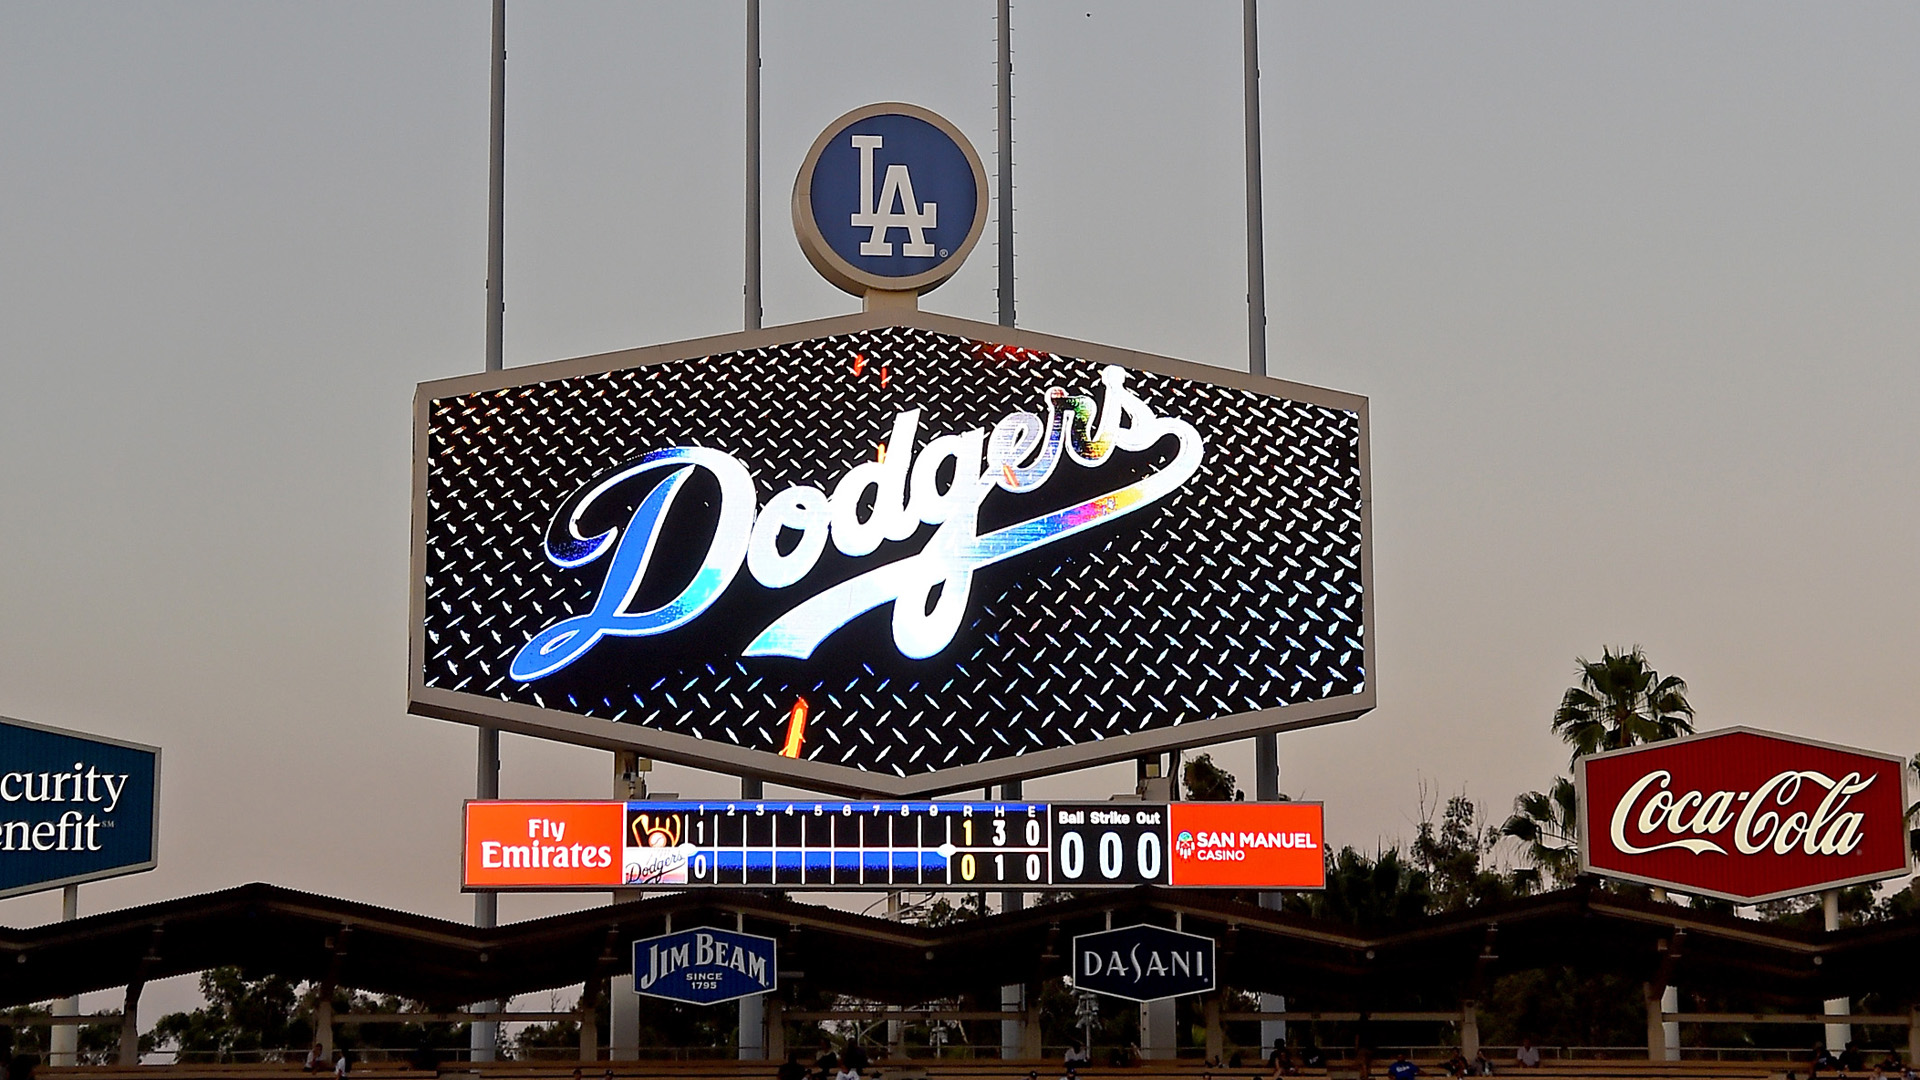 A stadium power outage caused a delay of game in the third inning between the Los Angeles Dodgers and the Milwaukee Brewers at Dodger Stadium on July 30, 2018. (Jayne Kamin-Oncea/Getty Images)